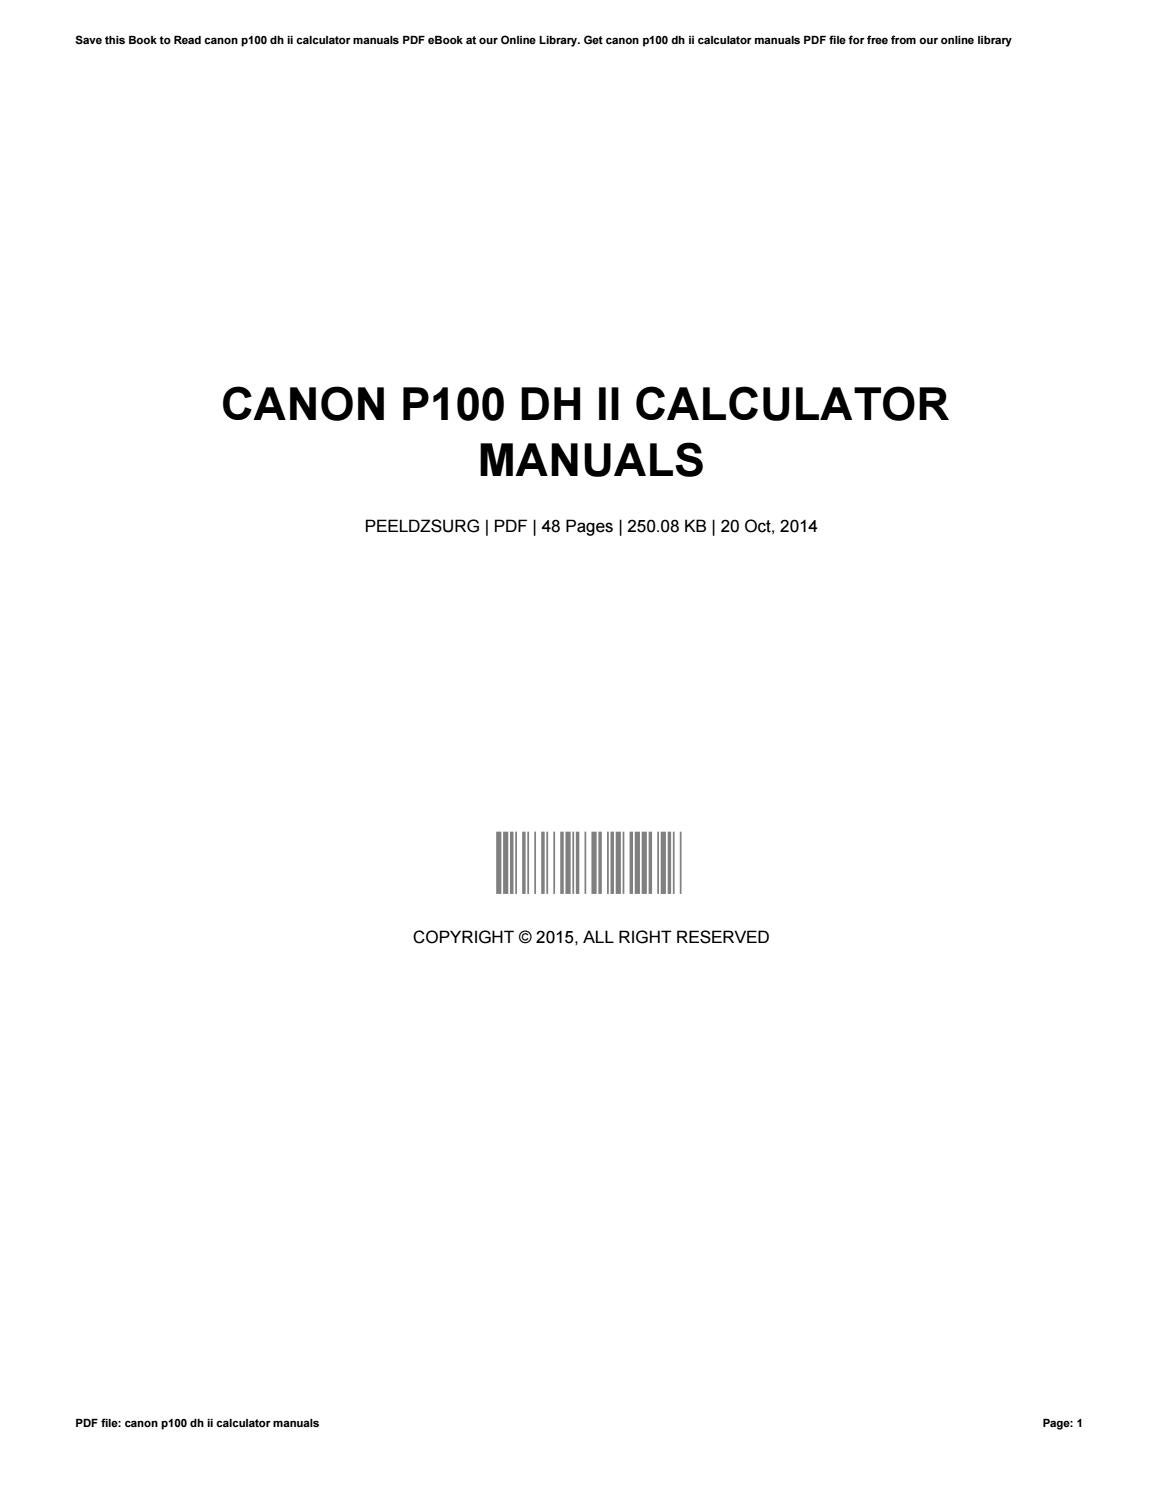 Canon p100 dh ii calculator manuals by DanialSummerlin1648 - issuu